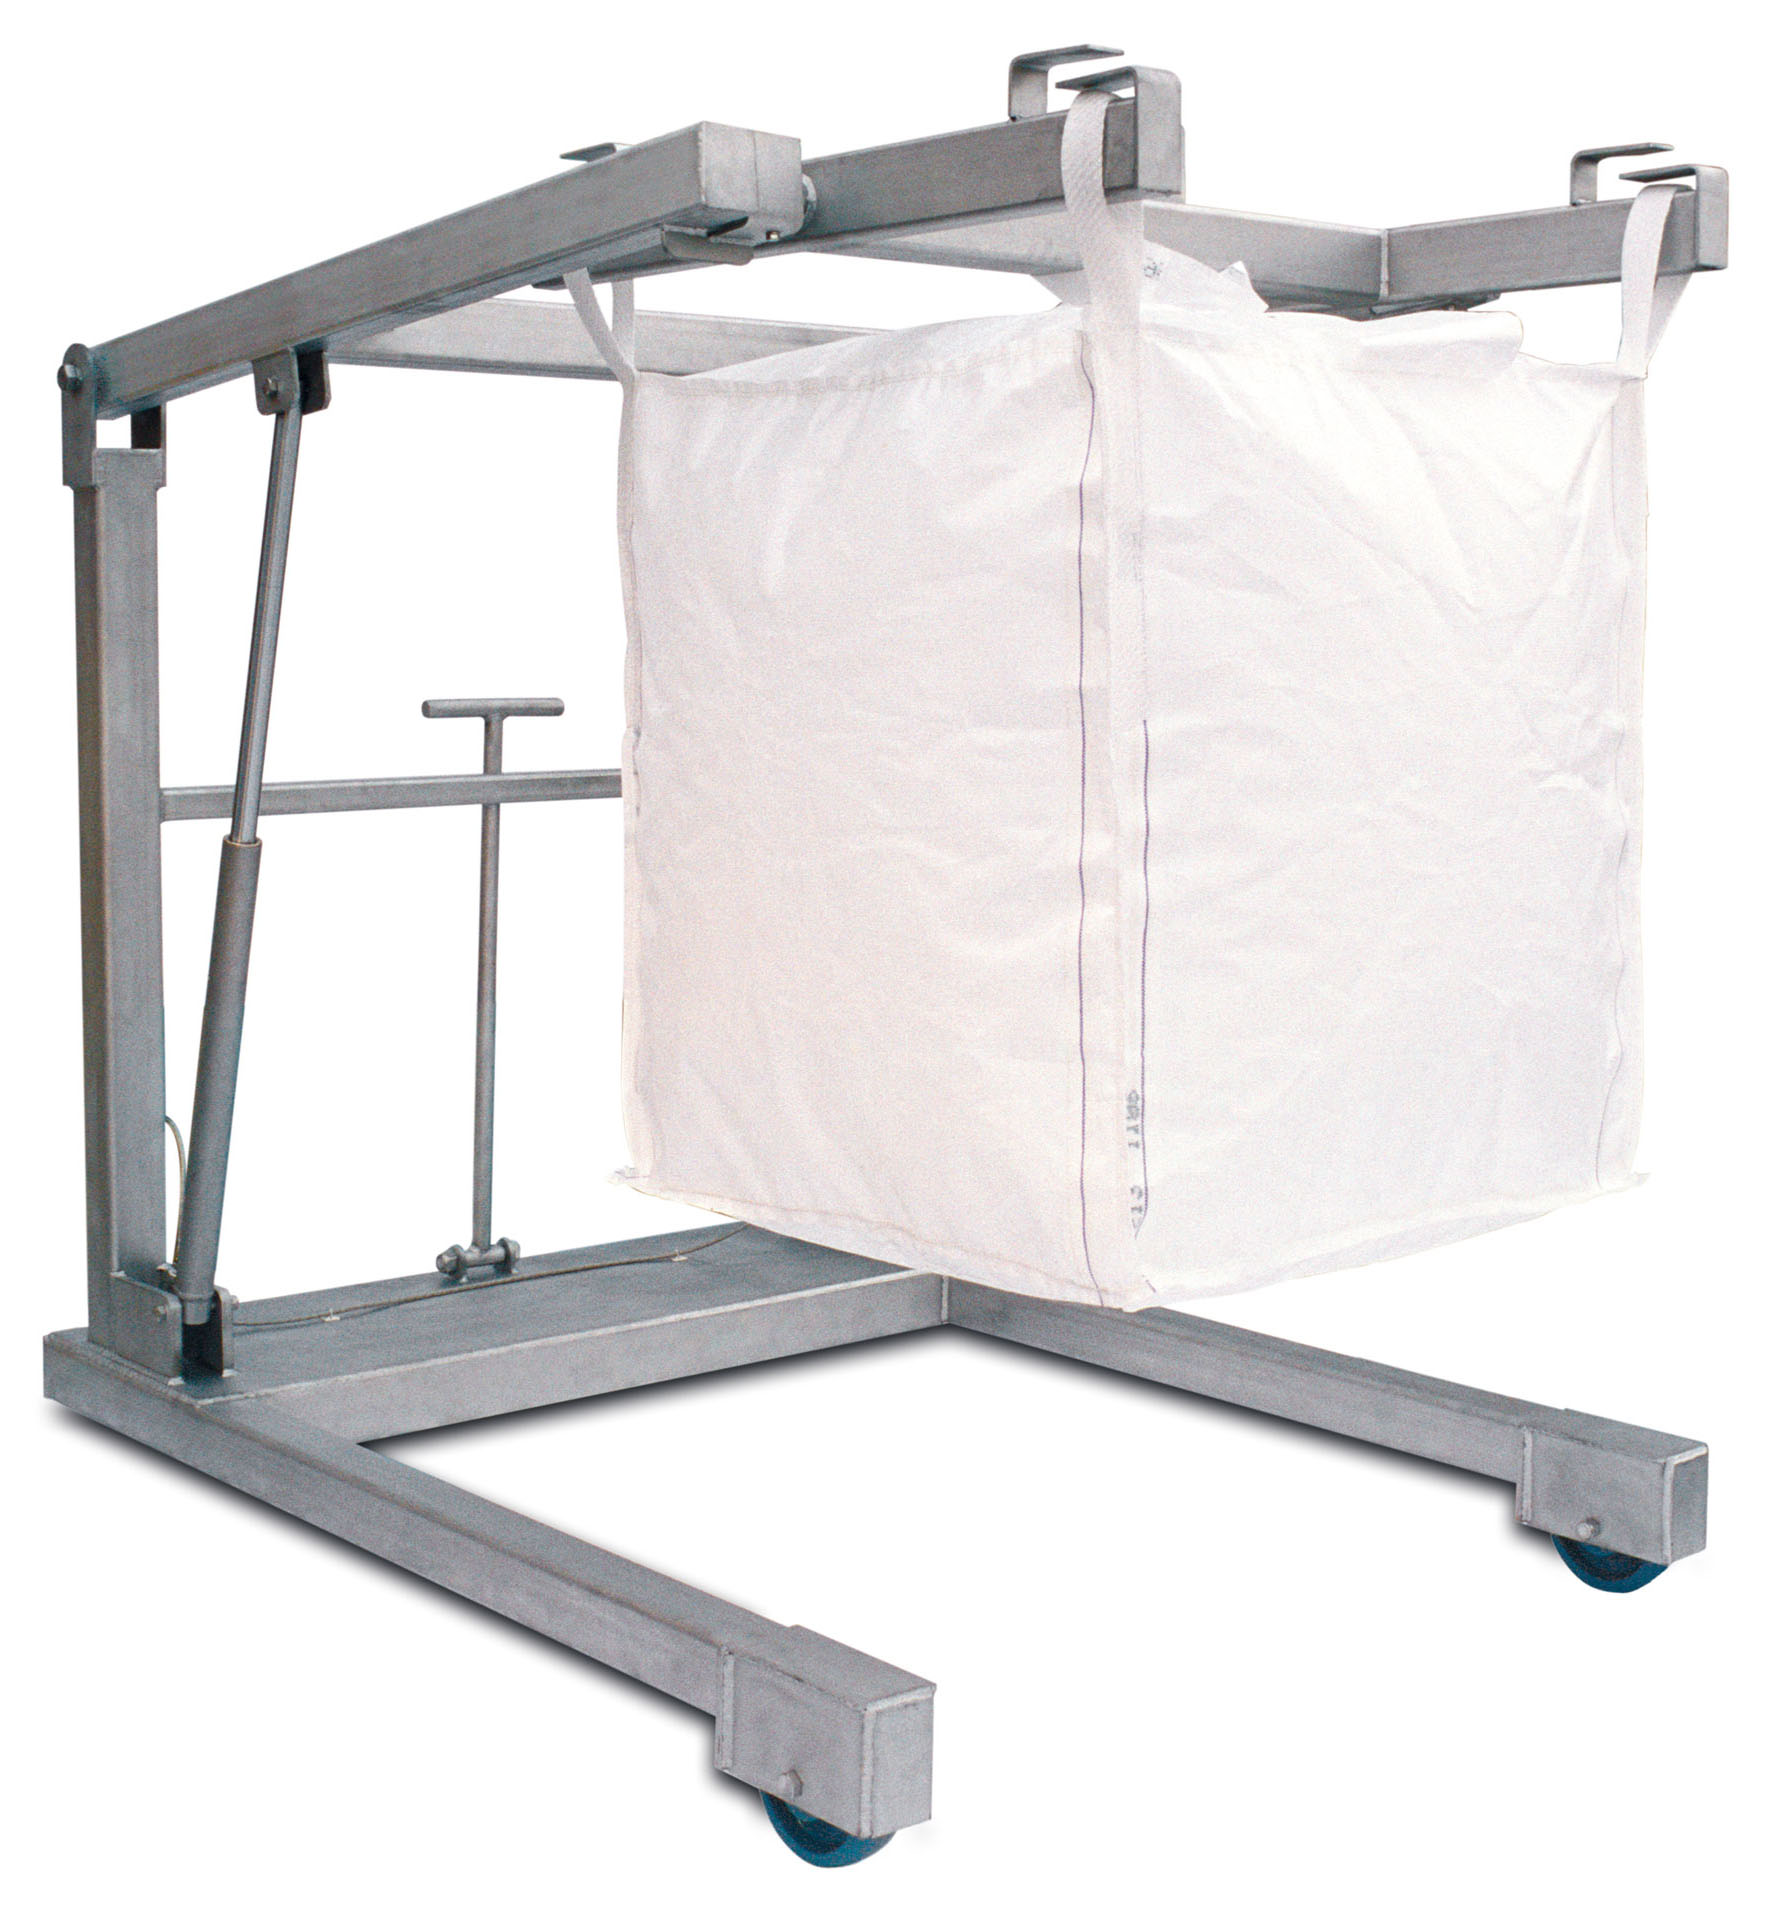 Stainless Steel Bulk Bag Carrier – Unloader